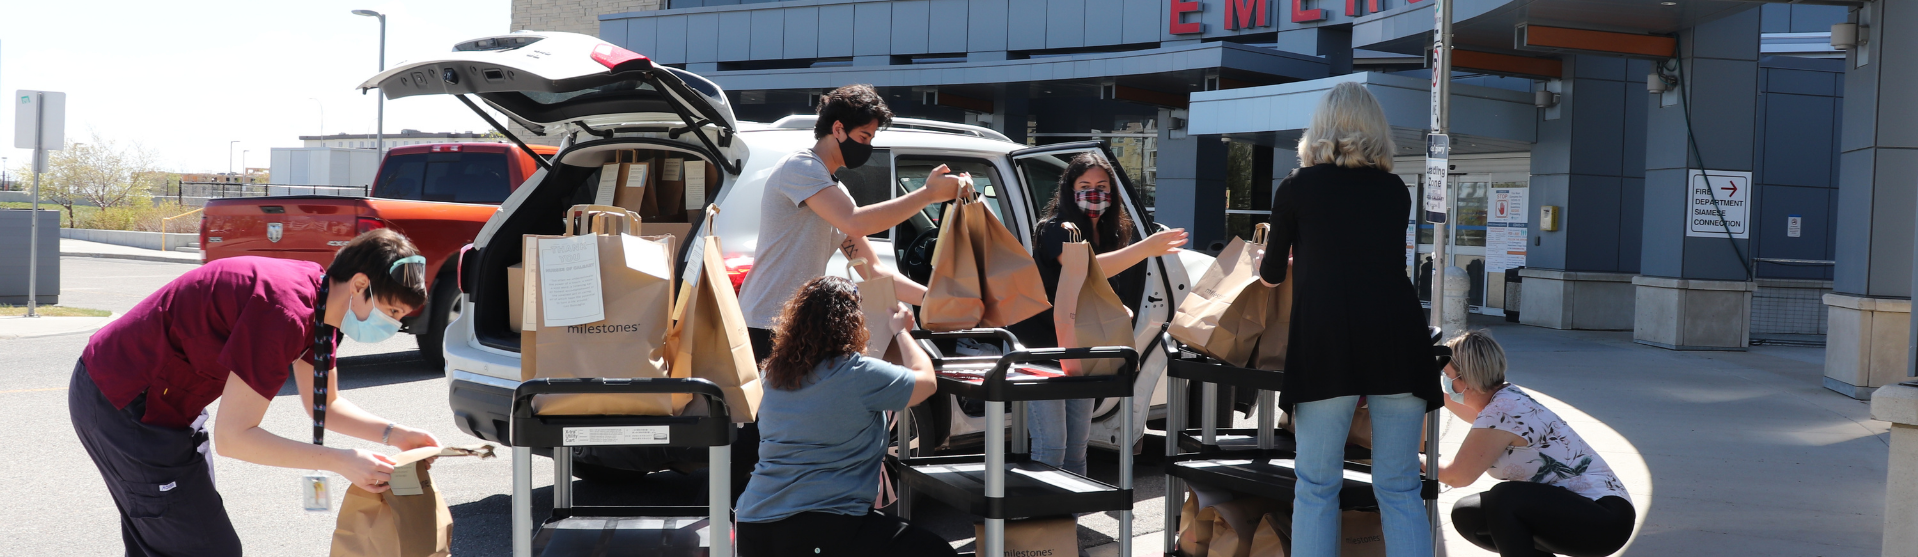 Several people loading donations in front of a hospital